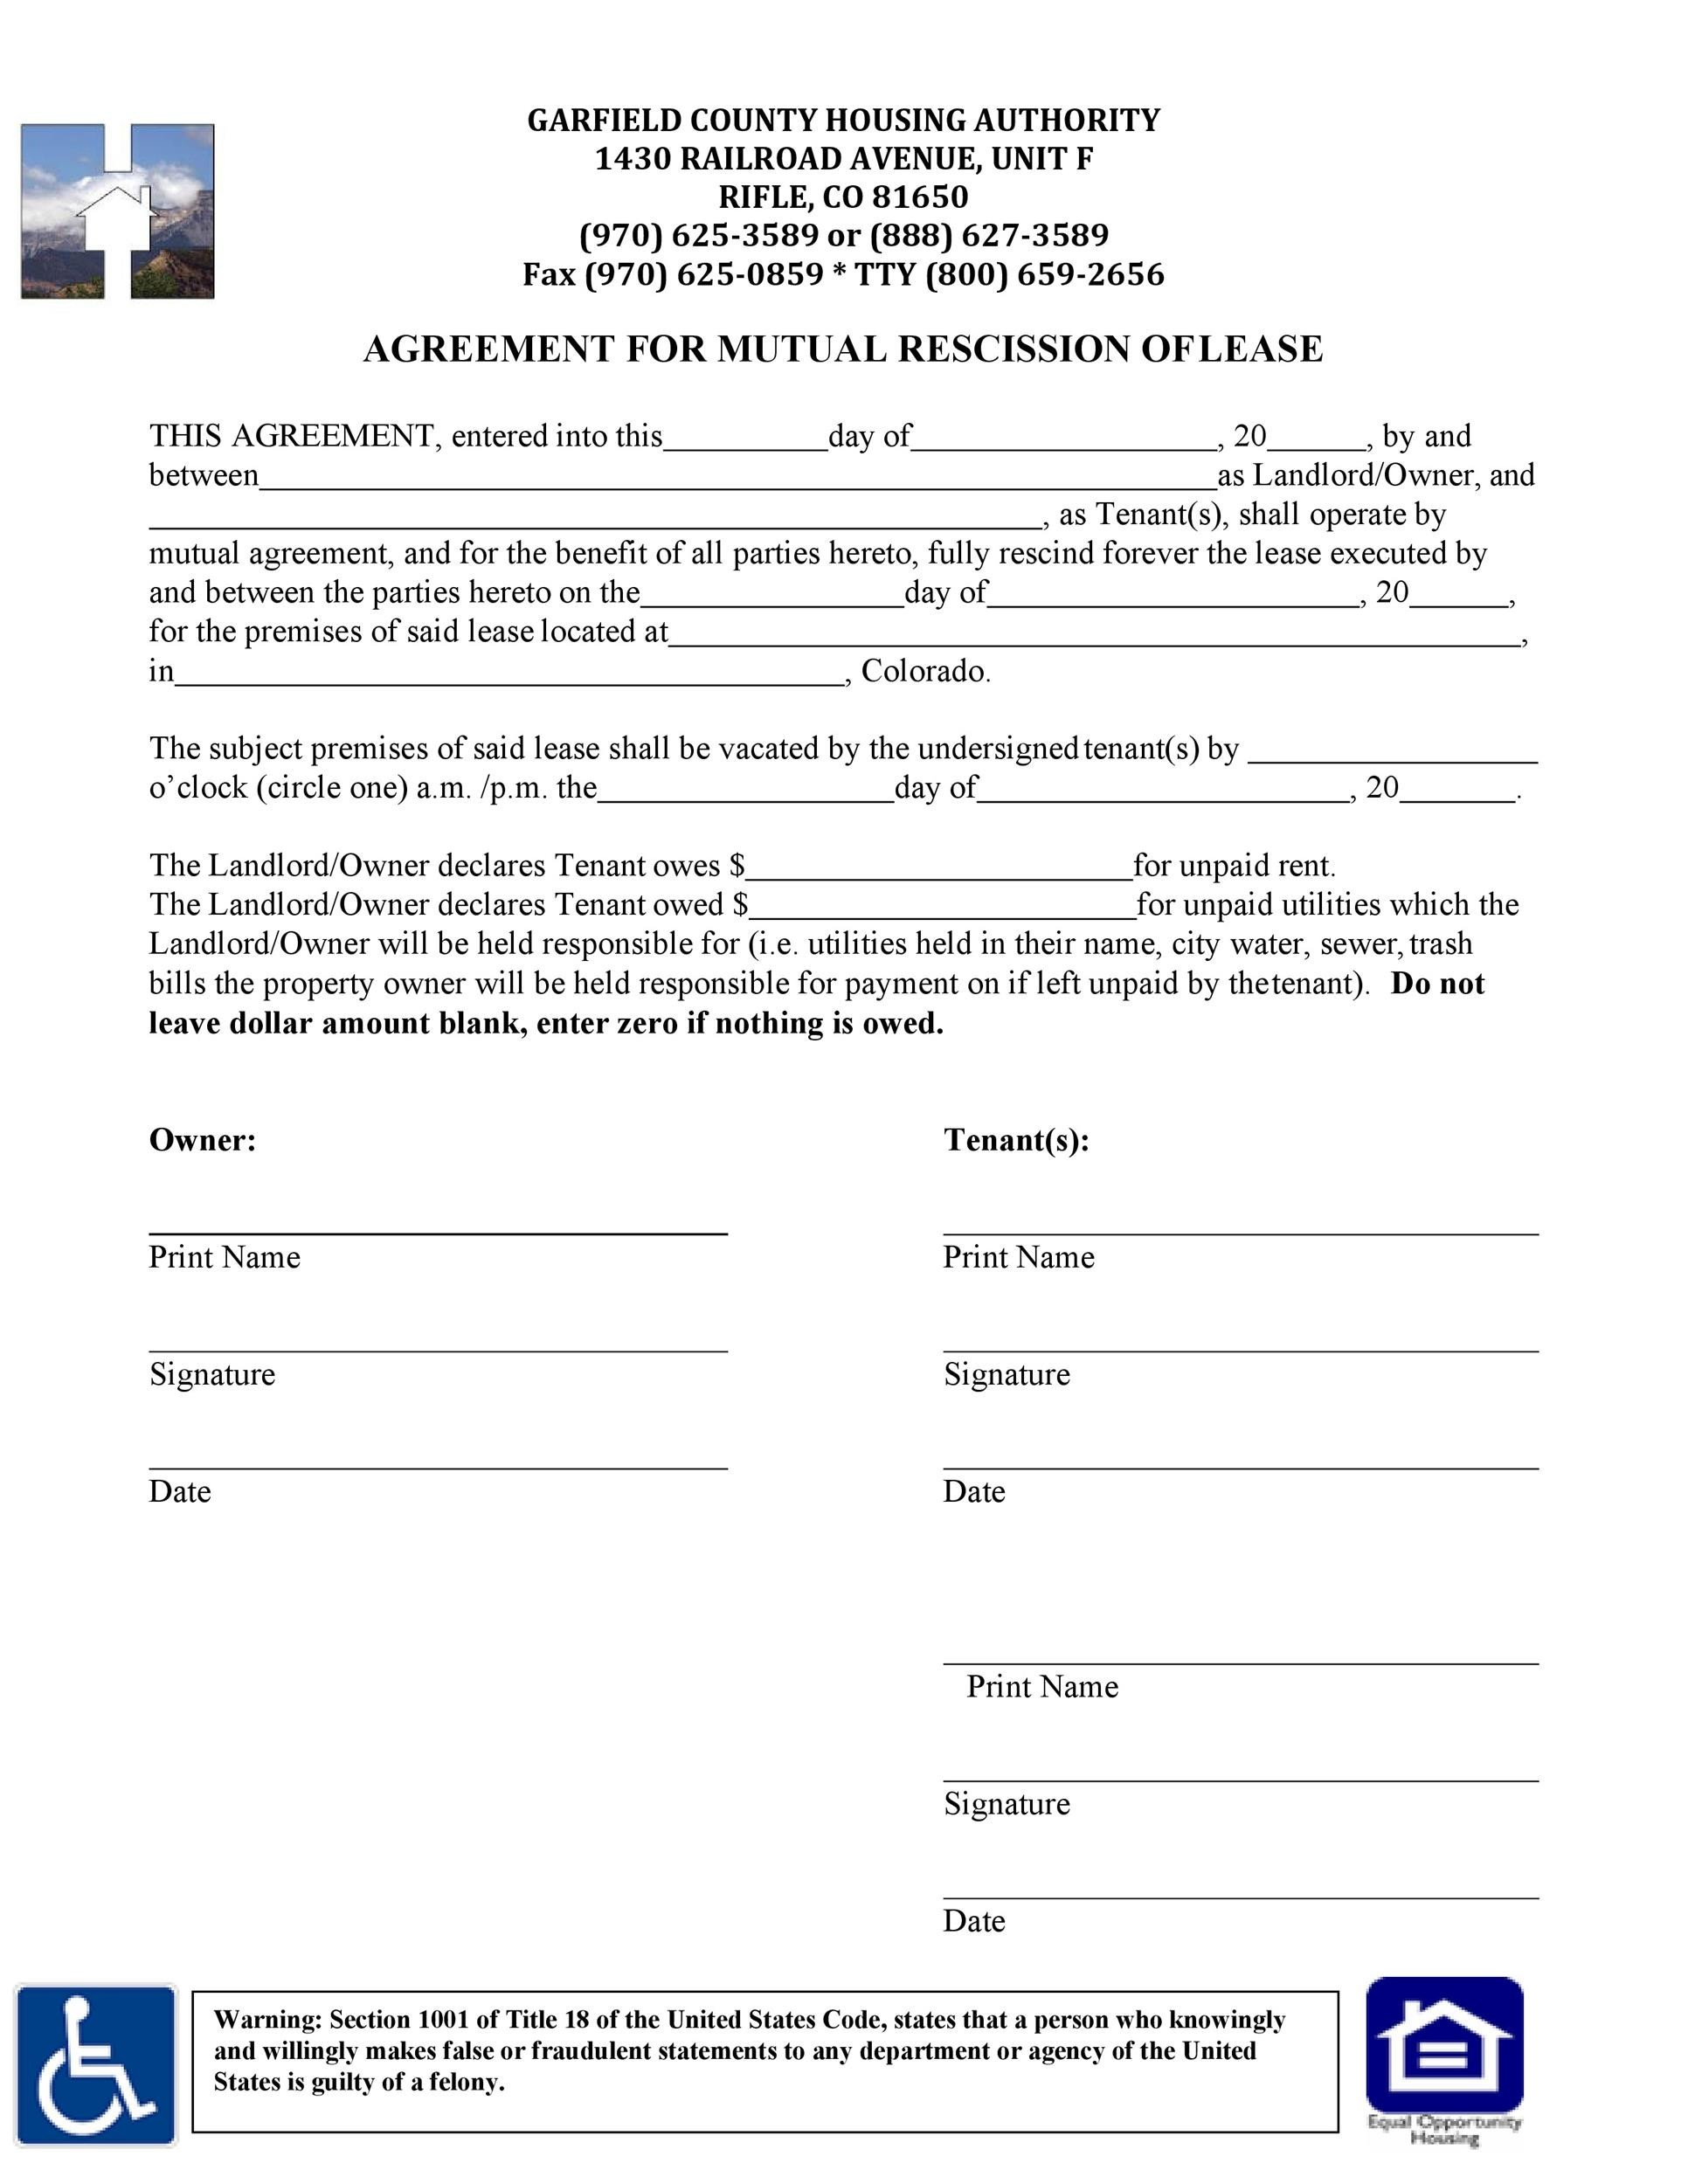 Free rescission agreement 36